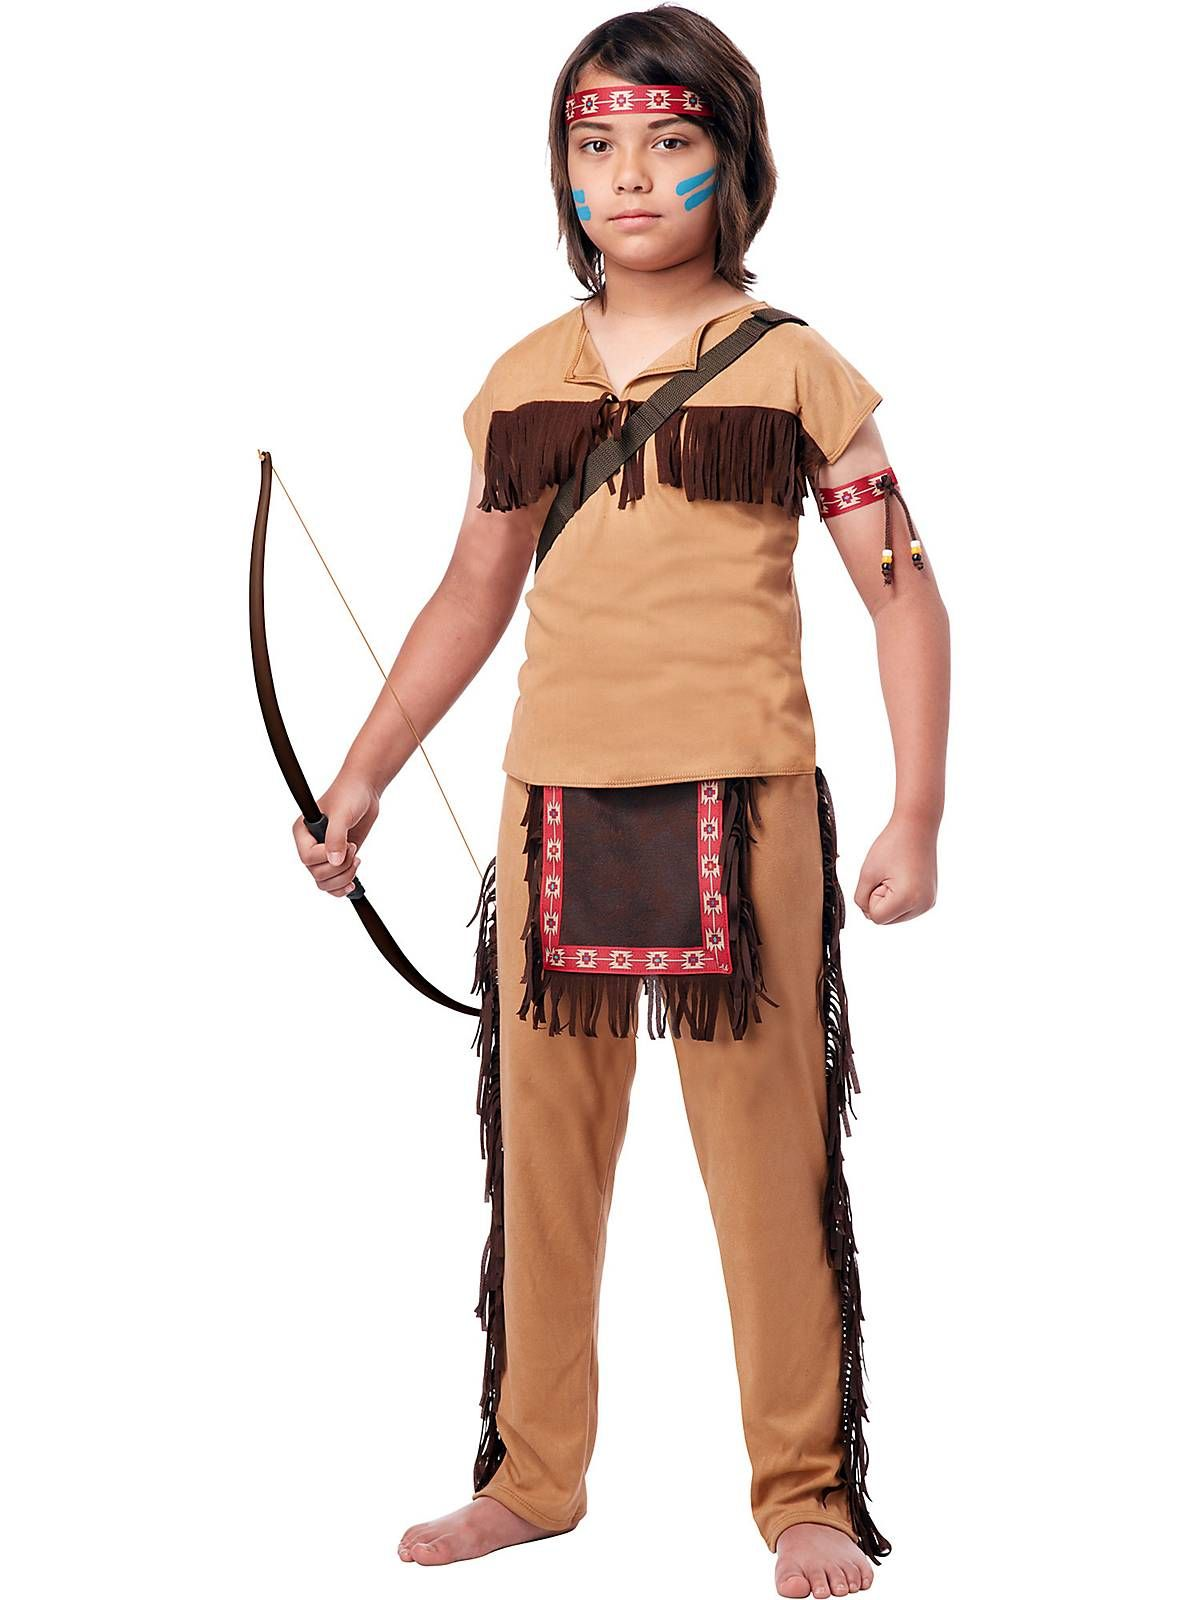 Boyu0027s Native American Brave Costume! See more #costume ideas for Halloween and more at  sc 1 st  Pinterest & Boyu0027s Native American Brave Costume! See more #costume ideas for ...